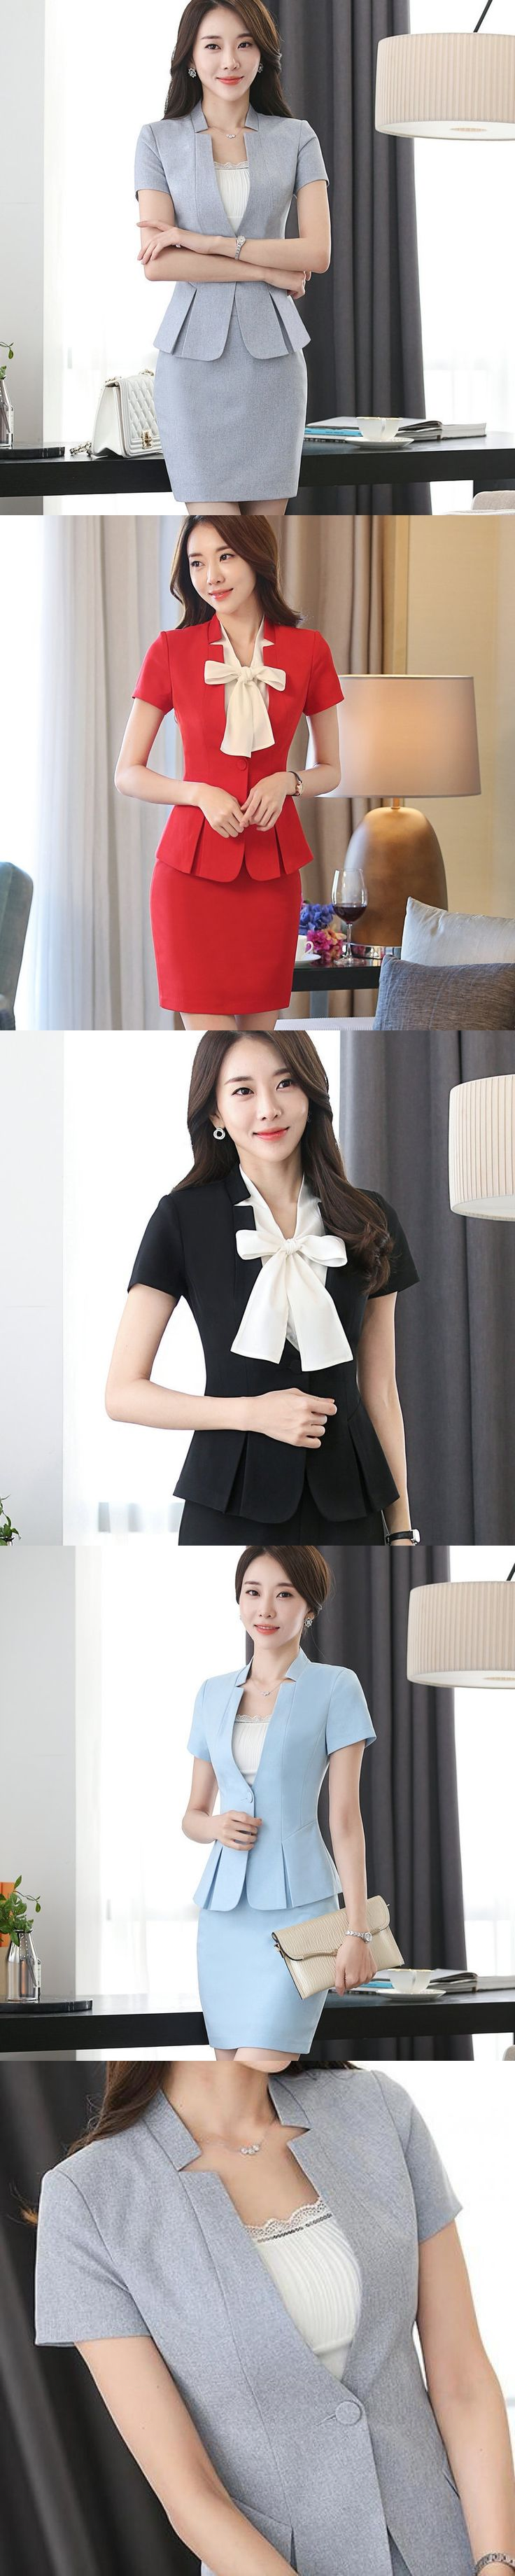 2017 New Summer Slim Suit Women Office Ladies Suit Set High Quality Plus Size Ol Work Wear Business Elegant Female Pleated Top